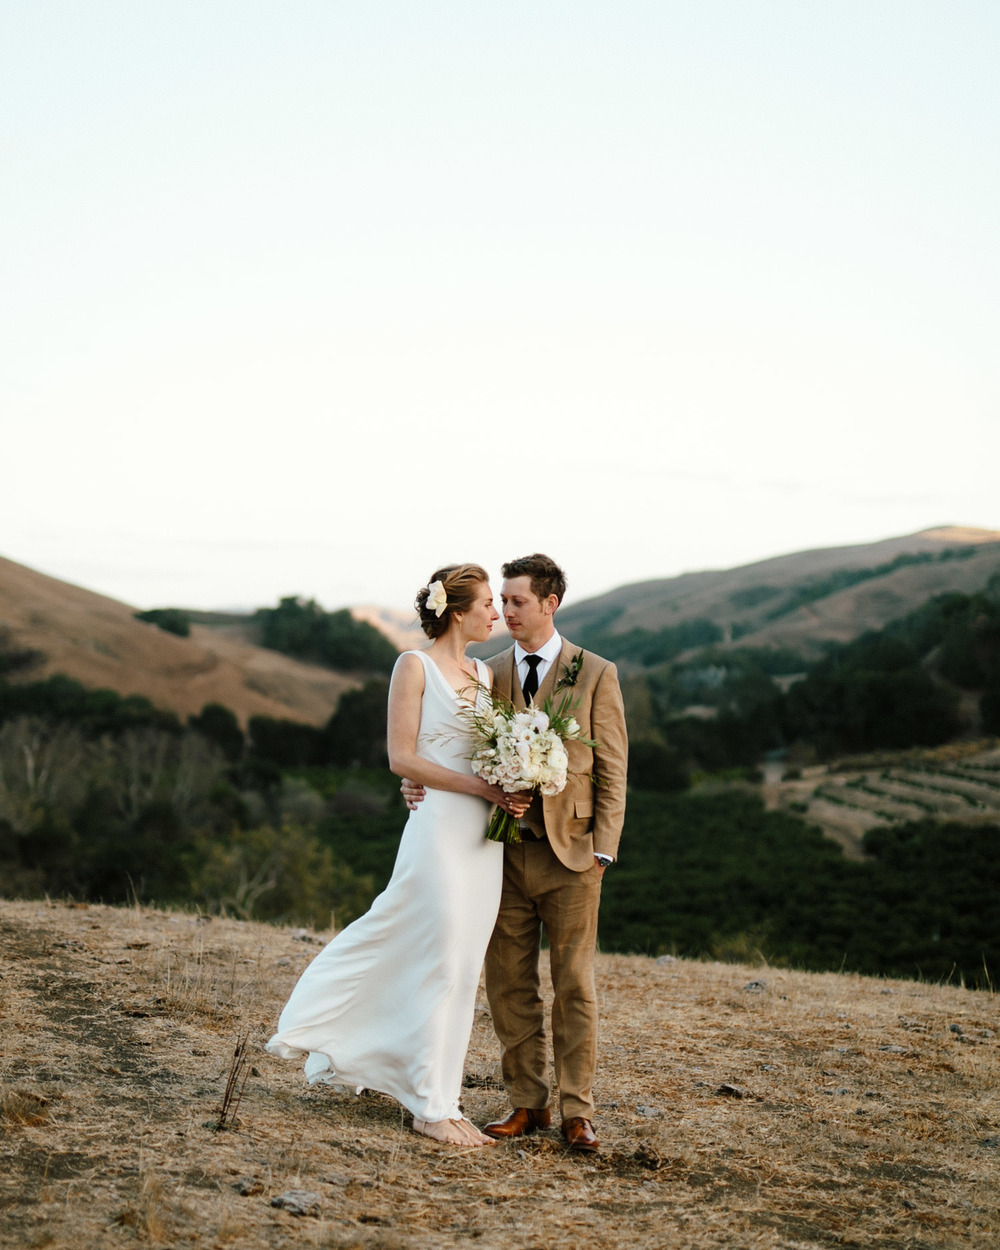 Destination Wedding Photographer, Cayucos, CA  - The Gathering Season x weareleoandkat 091.JPG